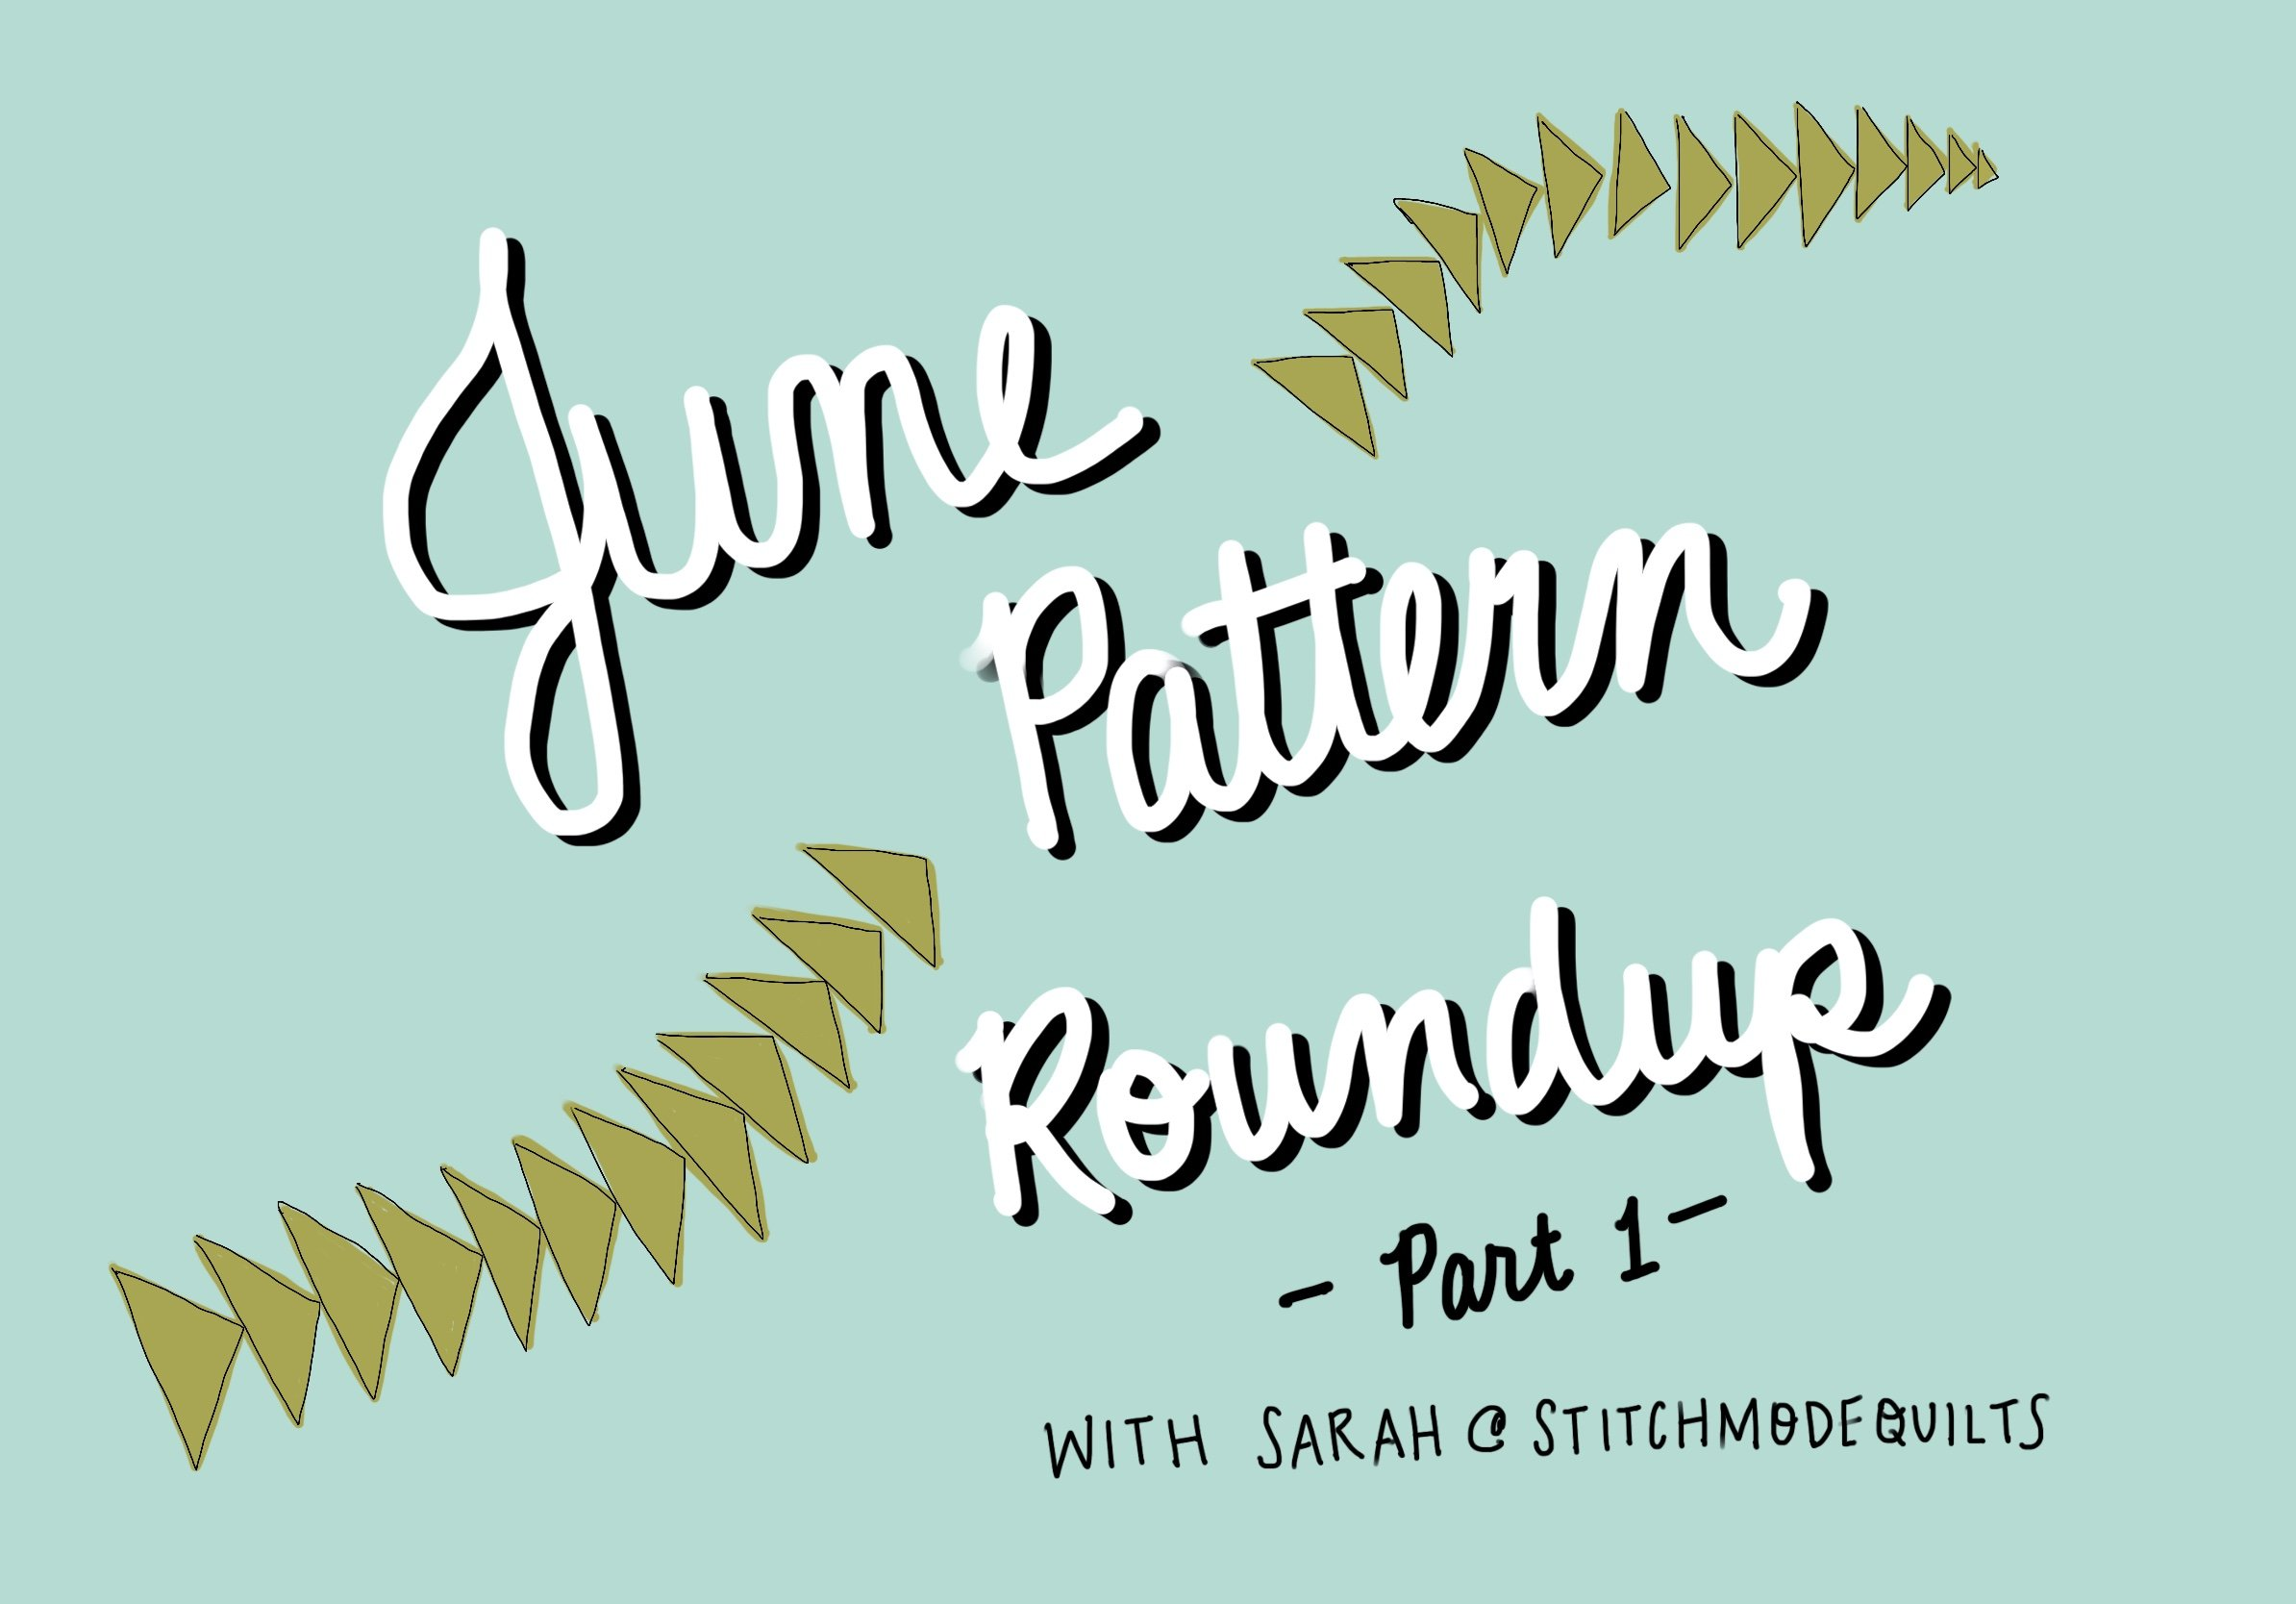 June Pattern Roundup Part 1 on FeelGood Fibers with Sarah of Stitch Mode Quilts